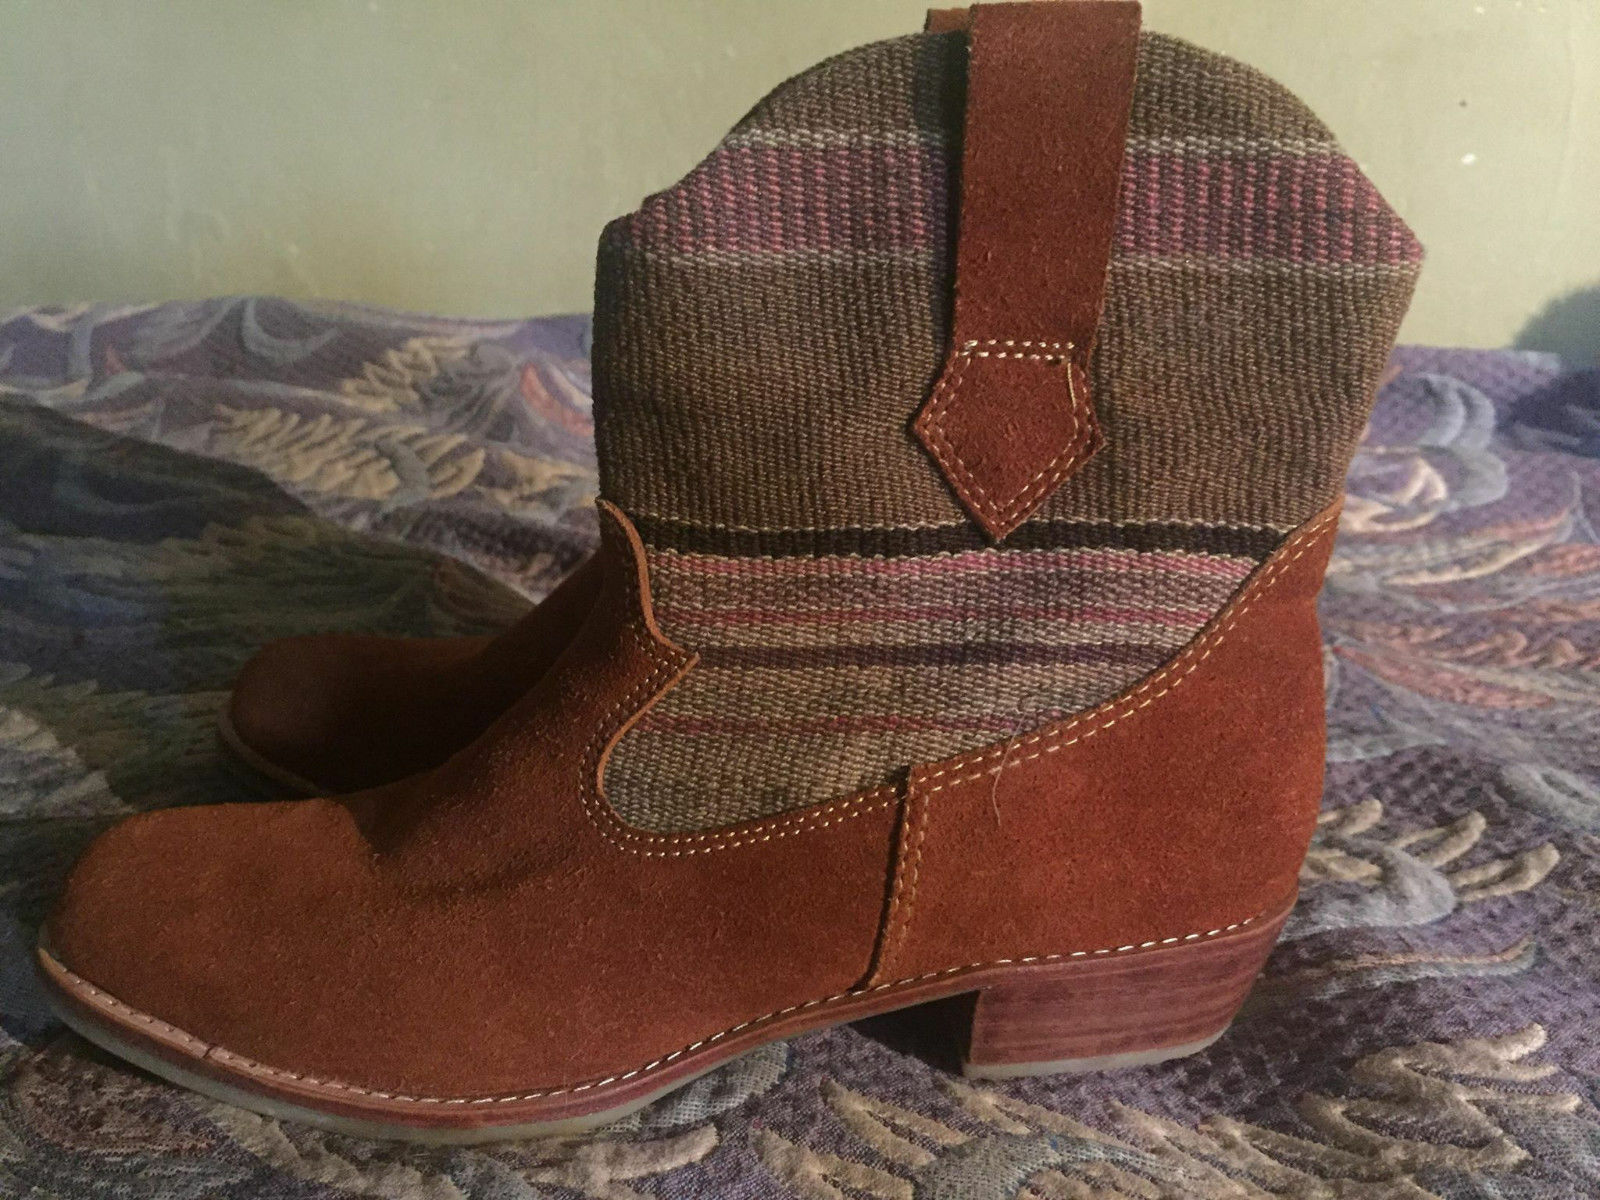 CHASKI Native shoes Real Leather Boots Boho Fest Cuzco Peru size US 8